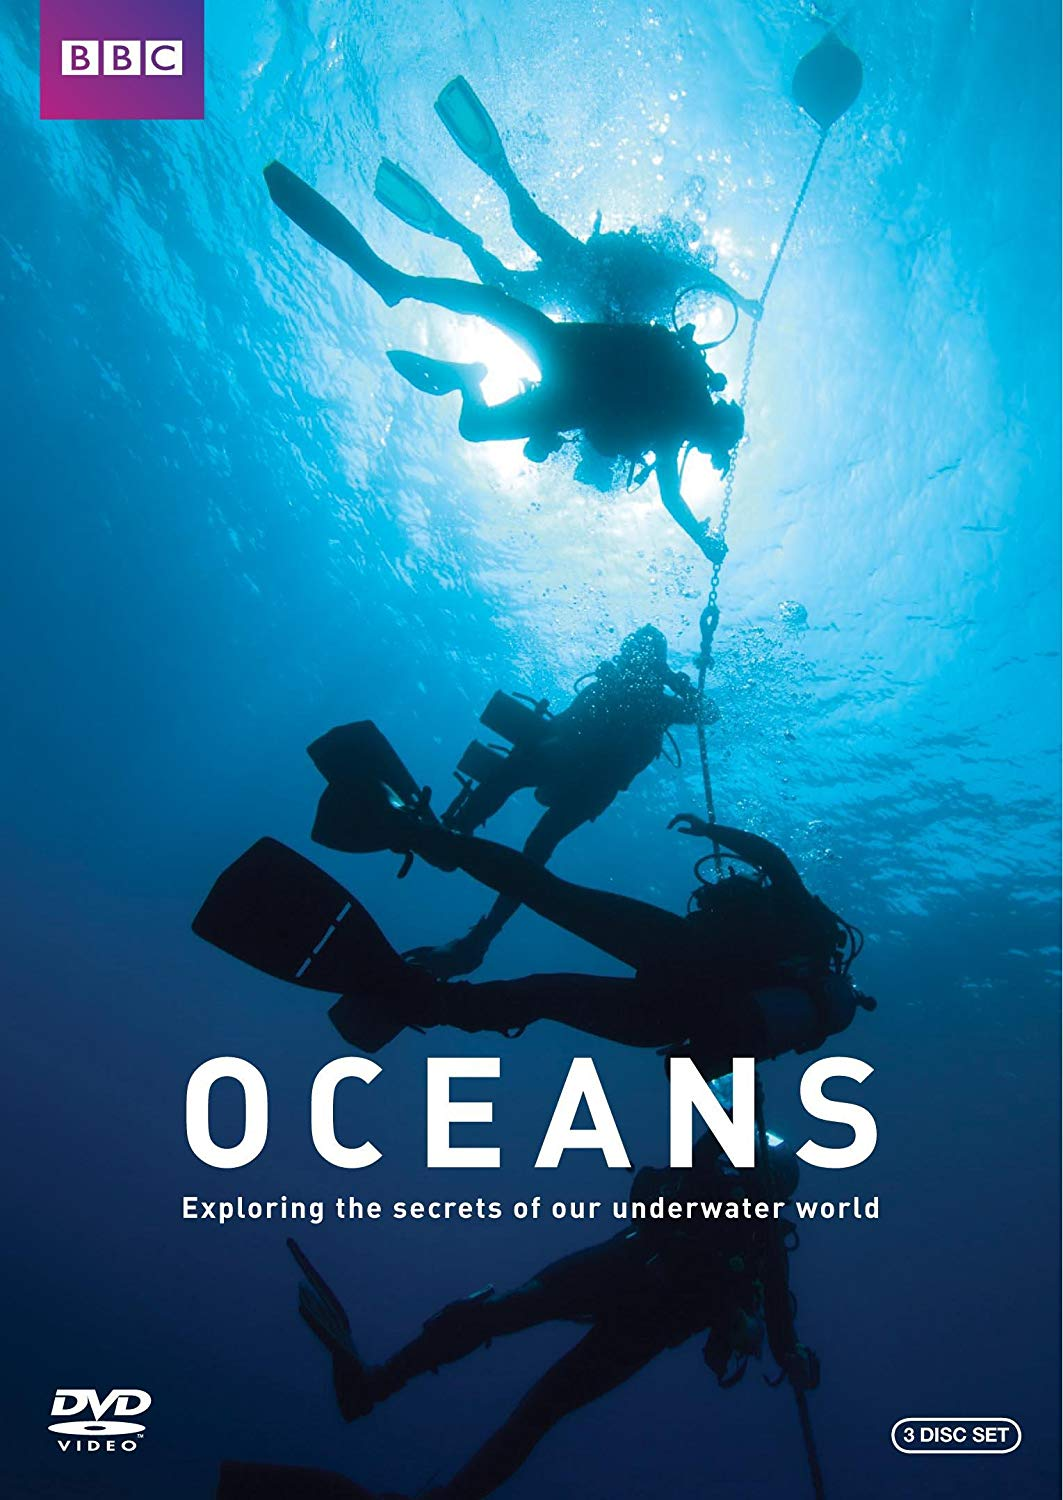 Oceans by the BBC - with Philippe Cousteau [DVD Documentary Series]Hidden within the depths of our oceans are secrets about our past, our planet and life itself. At last, an international team of underwater explorers is ready to dive in and discover them. This spectacular, surprising series combines archeology, geology, marine biology and anthropology with all the energy and excitement of a good thriller. Astonishing footage captures the full beauty of the alien world and video diaries vividly reflect the teams stresses, successes, disappointments and dangers.From discovering the truth behind rumors that the Mediterranean has become a breeding ground for the Great White, to exploring ancient wrecks that tell tales of piracy past and present, the team ventures fearlessly into some of the planet's most challenging environments providing a vital and timely understanding of our oceans.